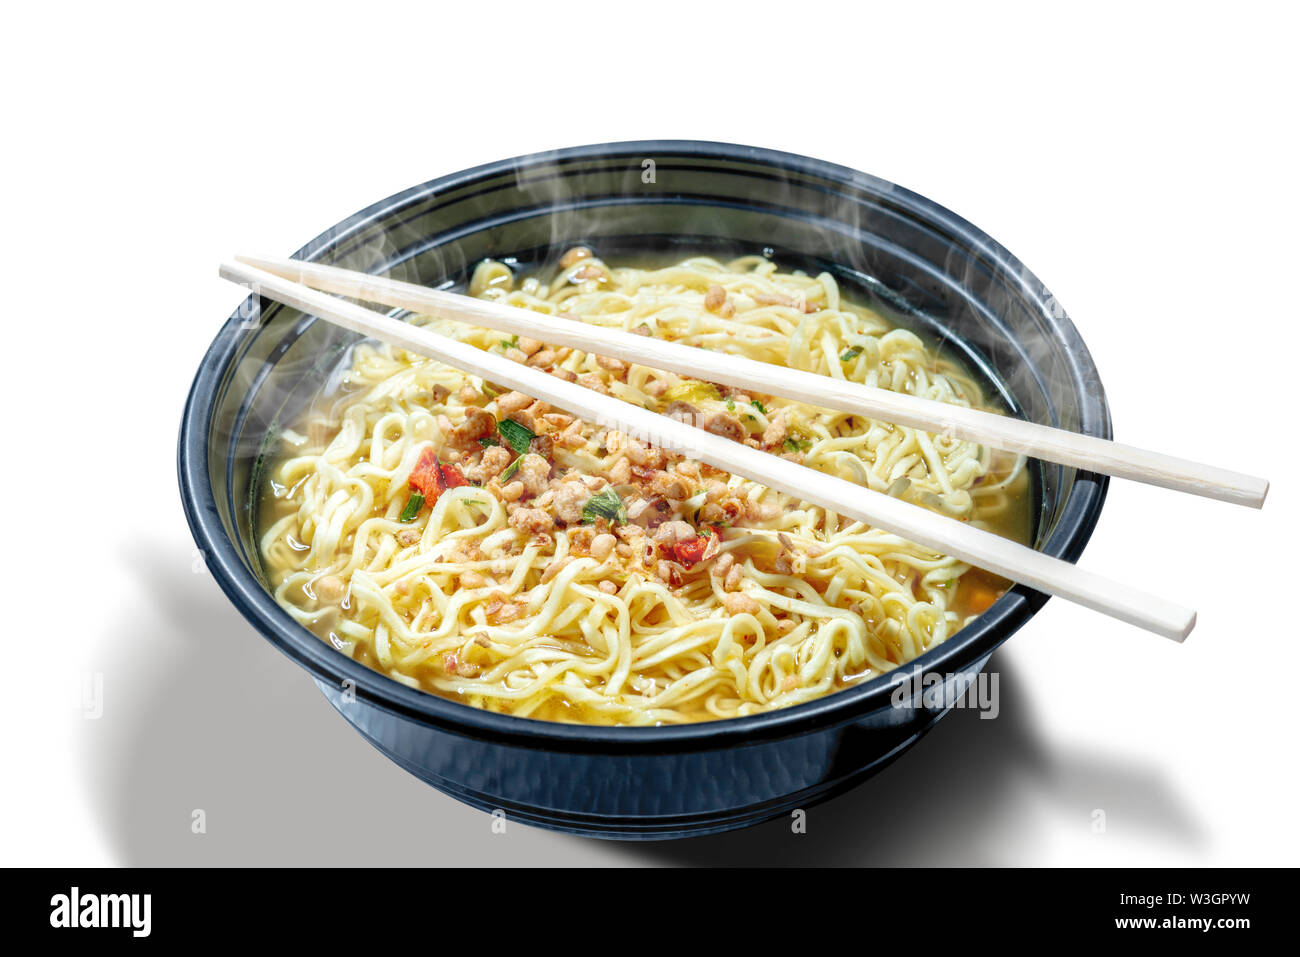 Noodles on the bowl with chopstick isolated over white background - Stock Image